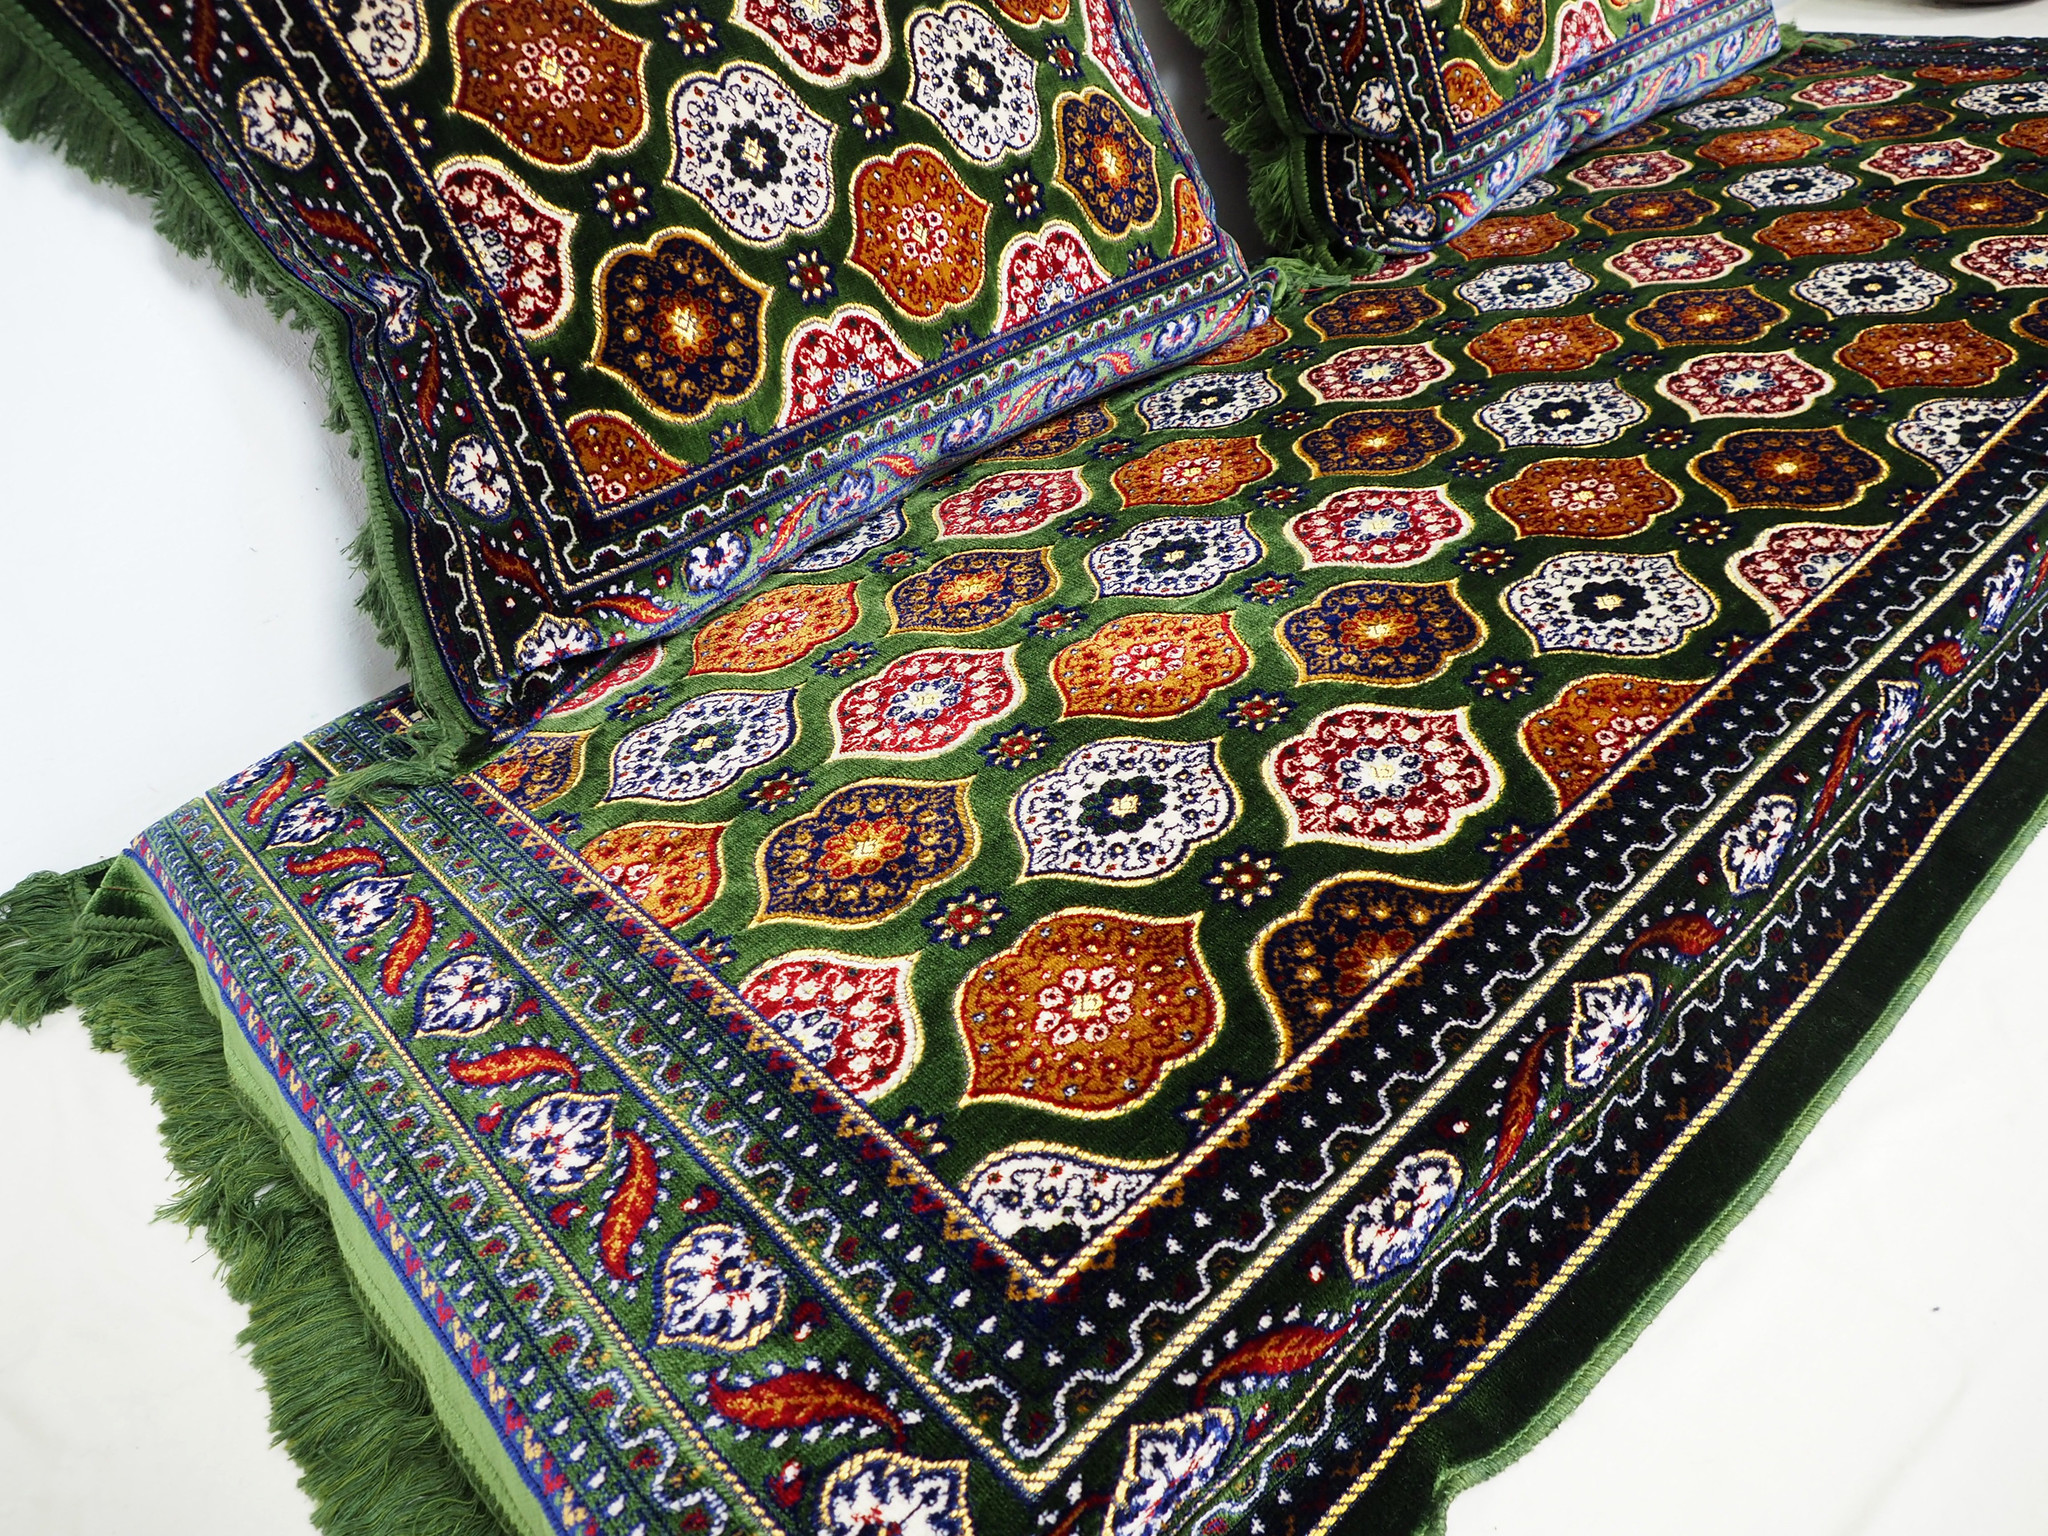 Set of 3 Pcs  1x Mattress  + 2x cushions orient Afghan nomad pillow rug seat floor cushion 1001-night Seating  majlis Toshak توشک  (Green)